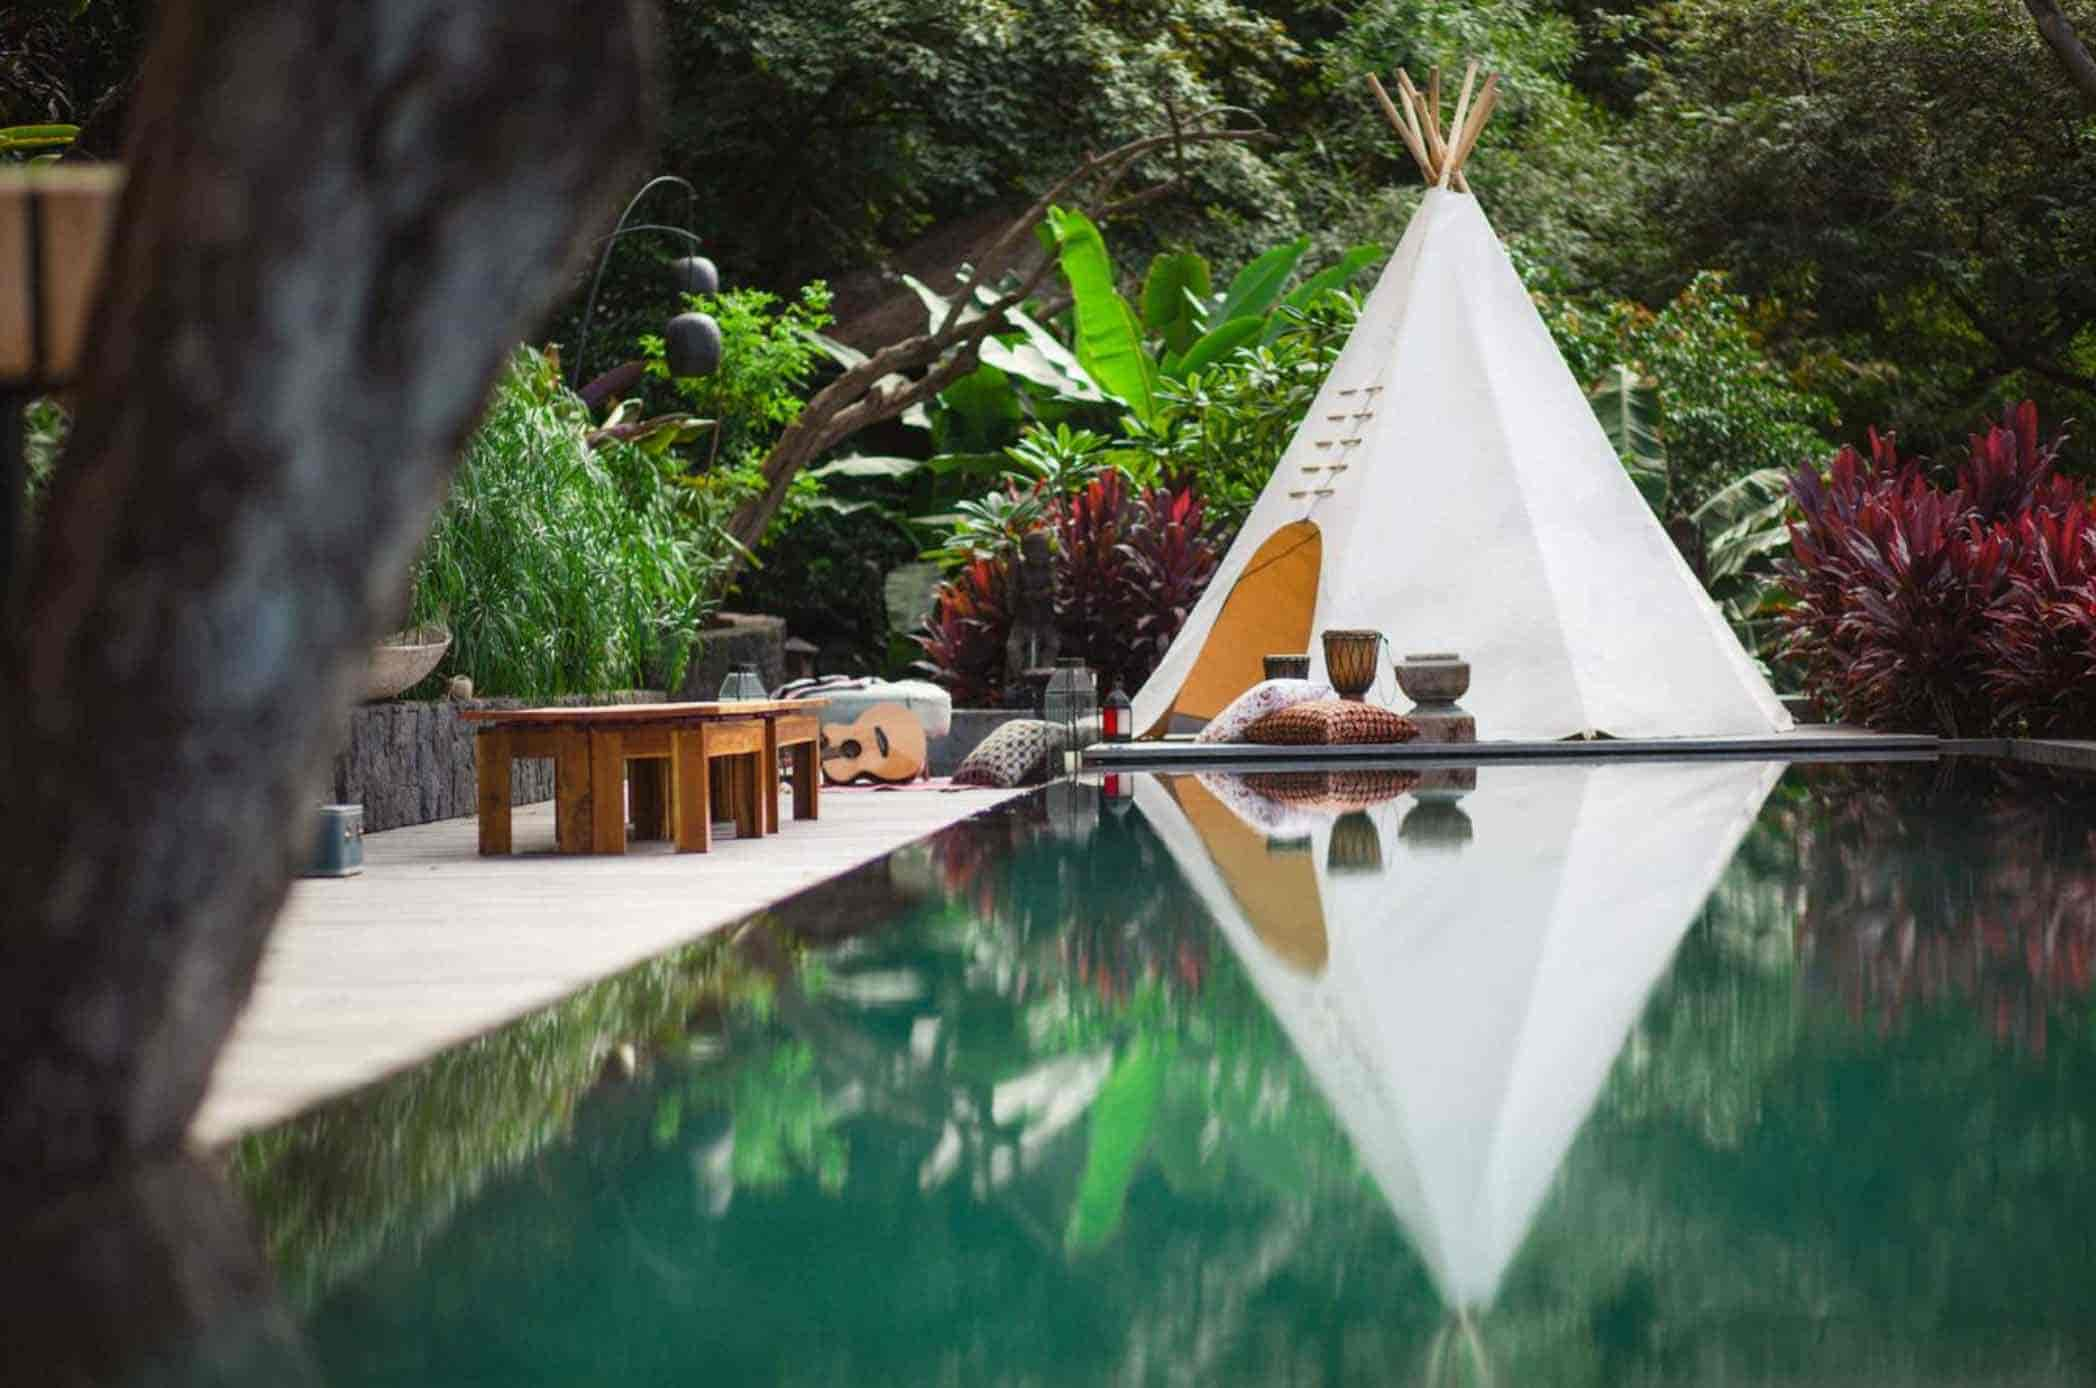 Costa Rica, El Chante Retreat, pool